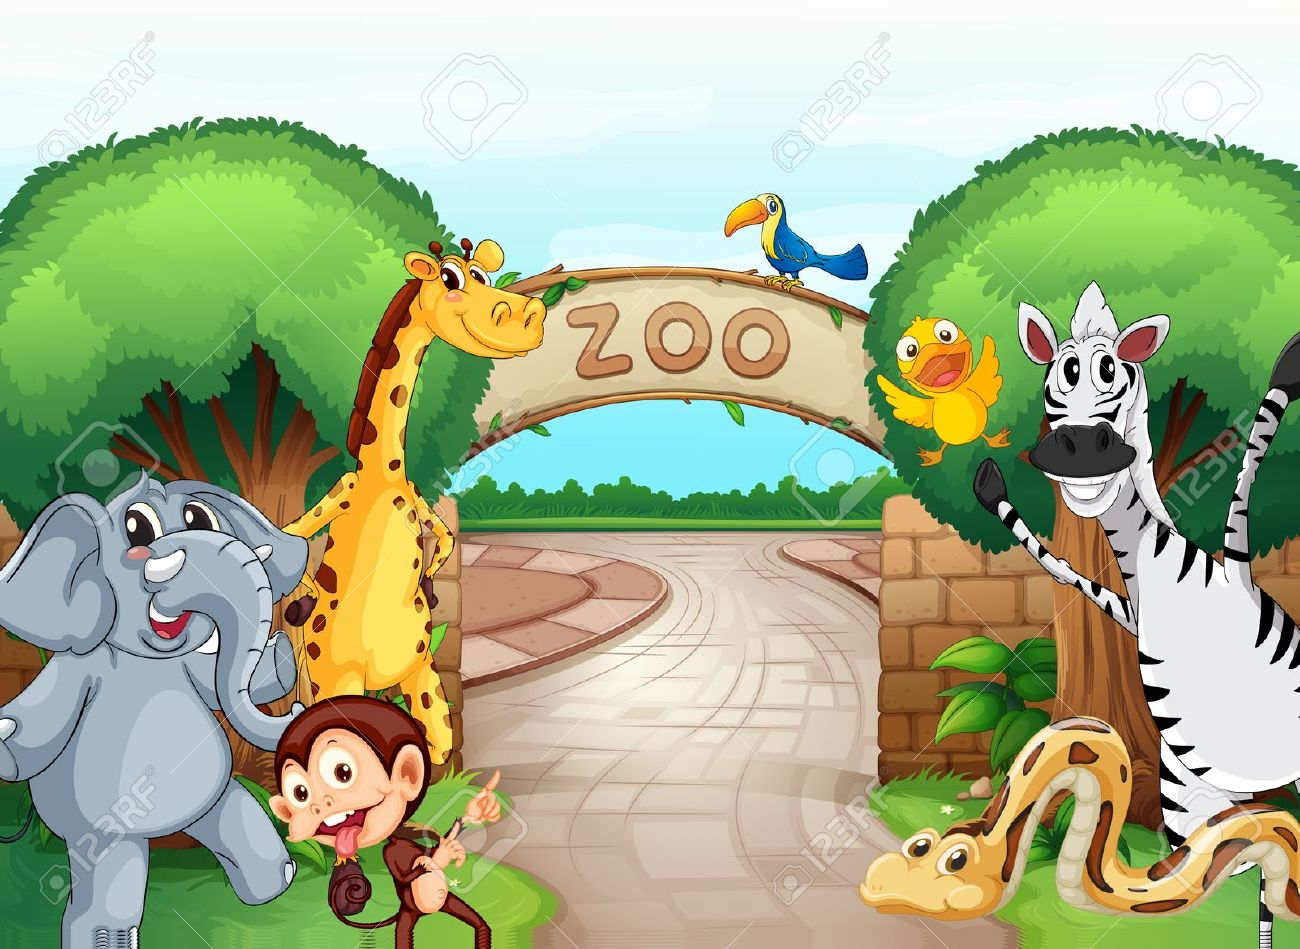 Zoo Gate: Illustration Of A .-zoo gate: illustration of a .-18